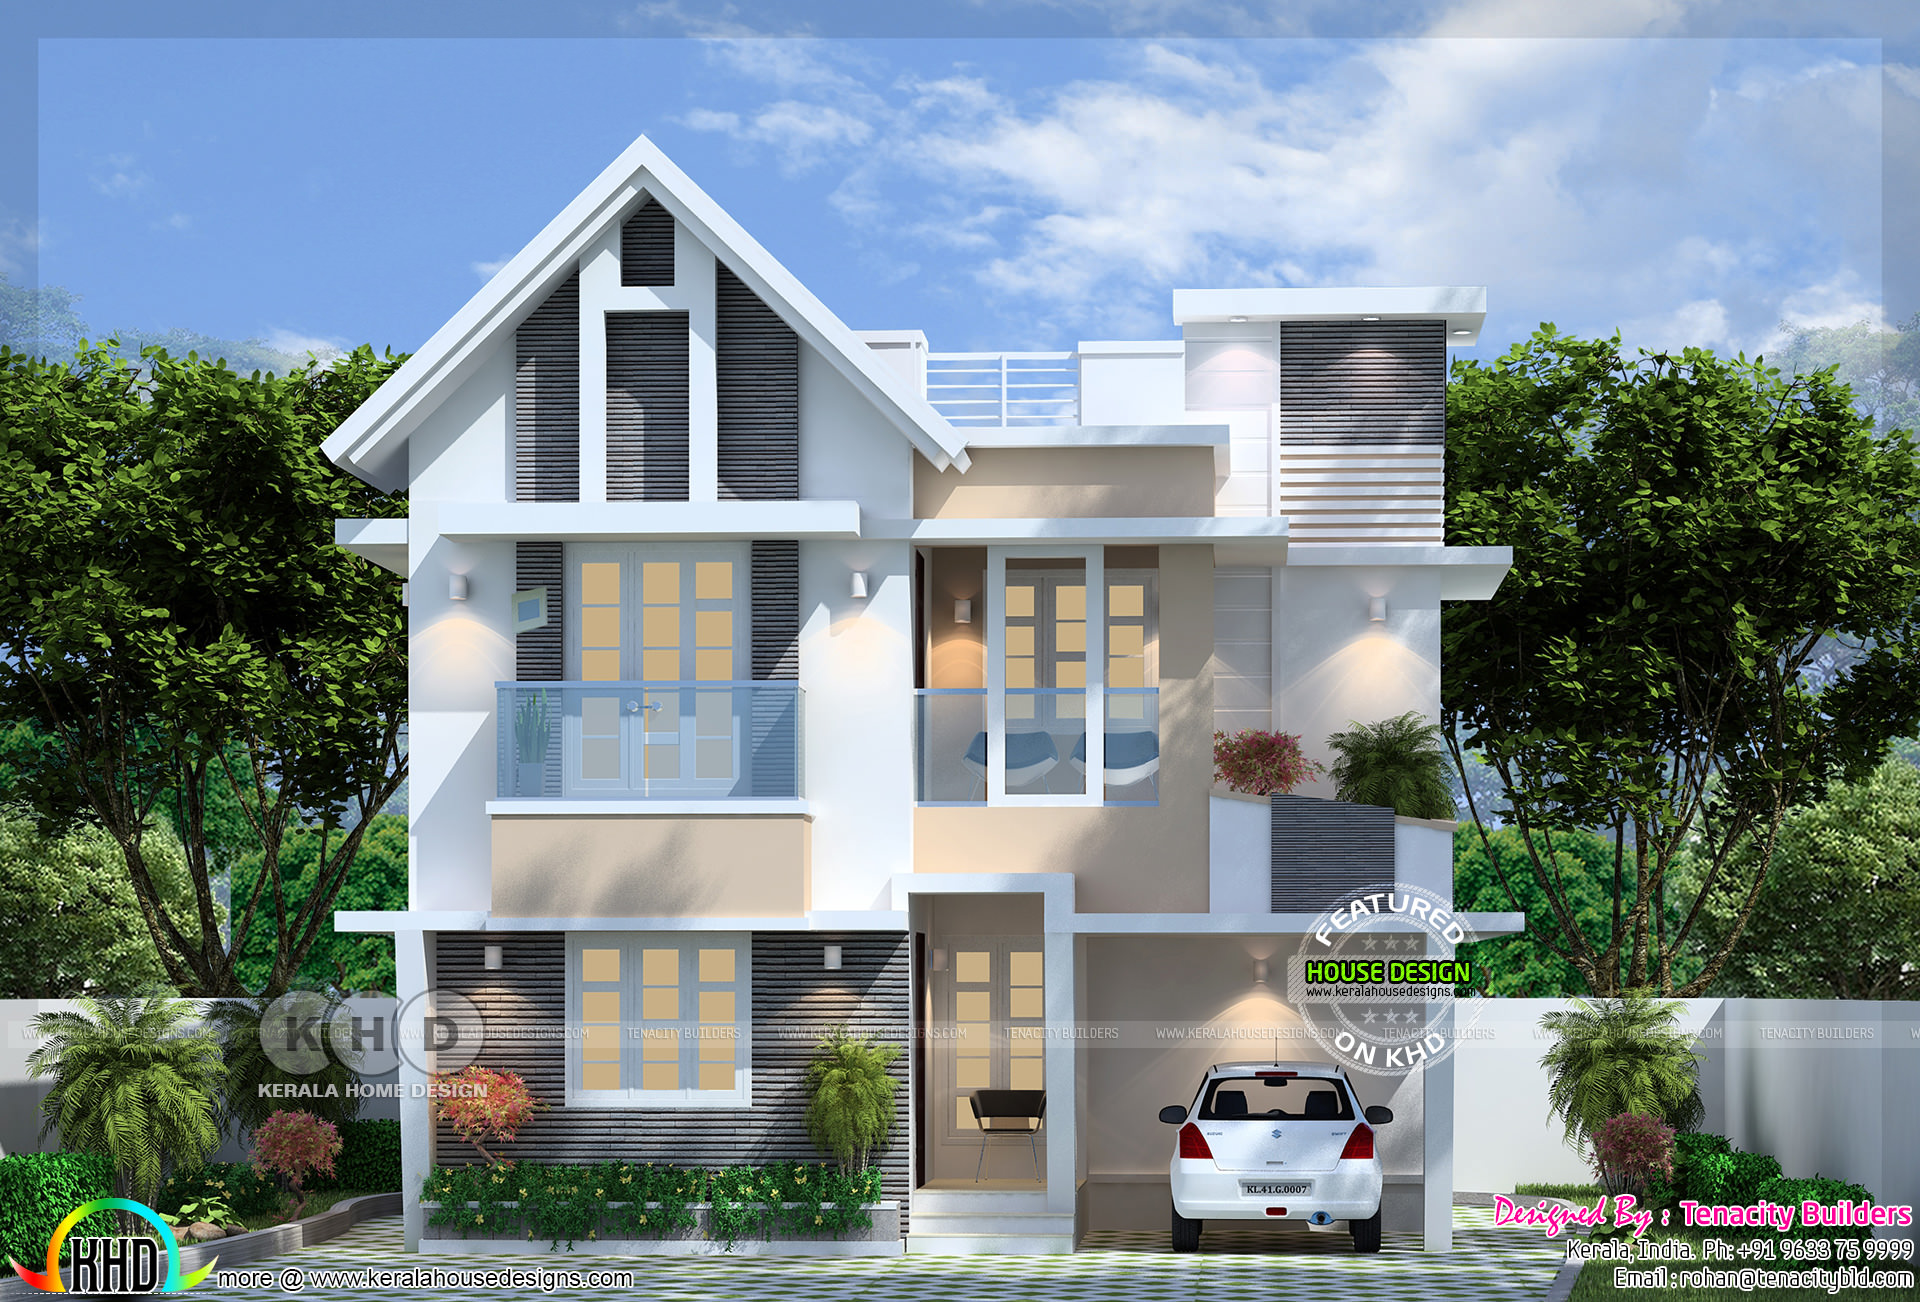 Ground Floor Area : 770 Square Feet. First Floor Area : 685 Square Feet.  Total Area : 1455 Sq.ft. No. Of Bedrooms : 3. Design Style : European Model